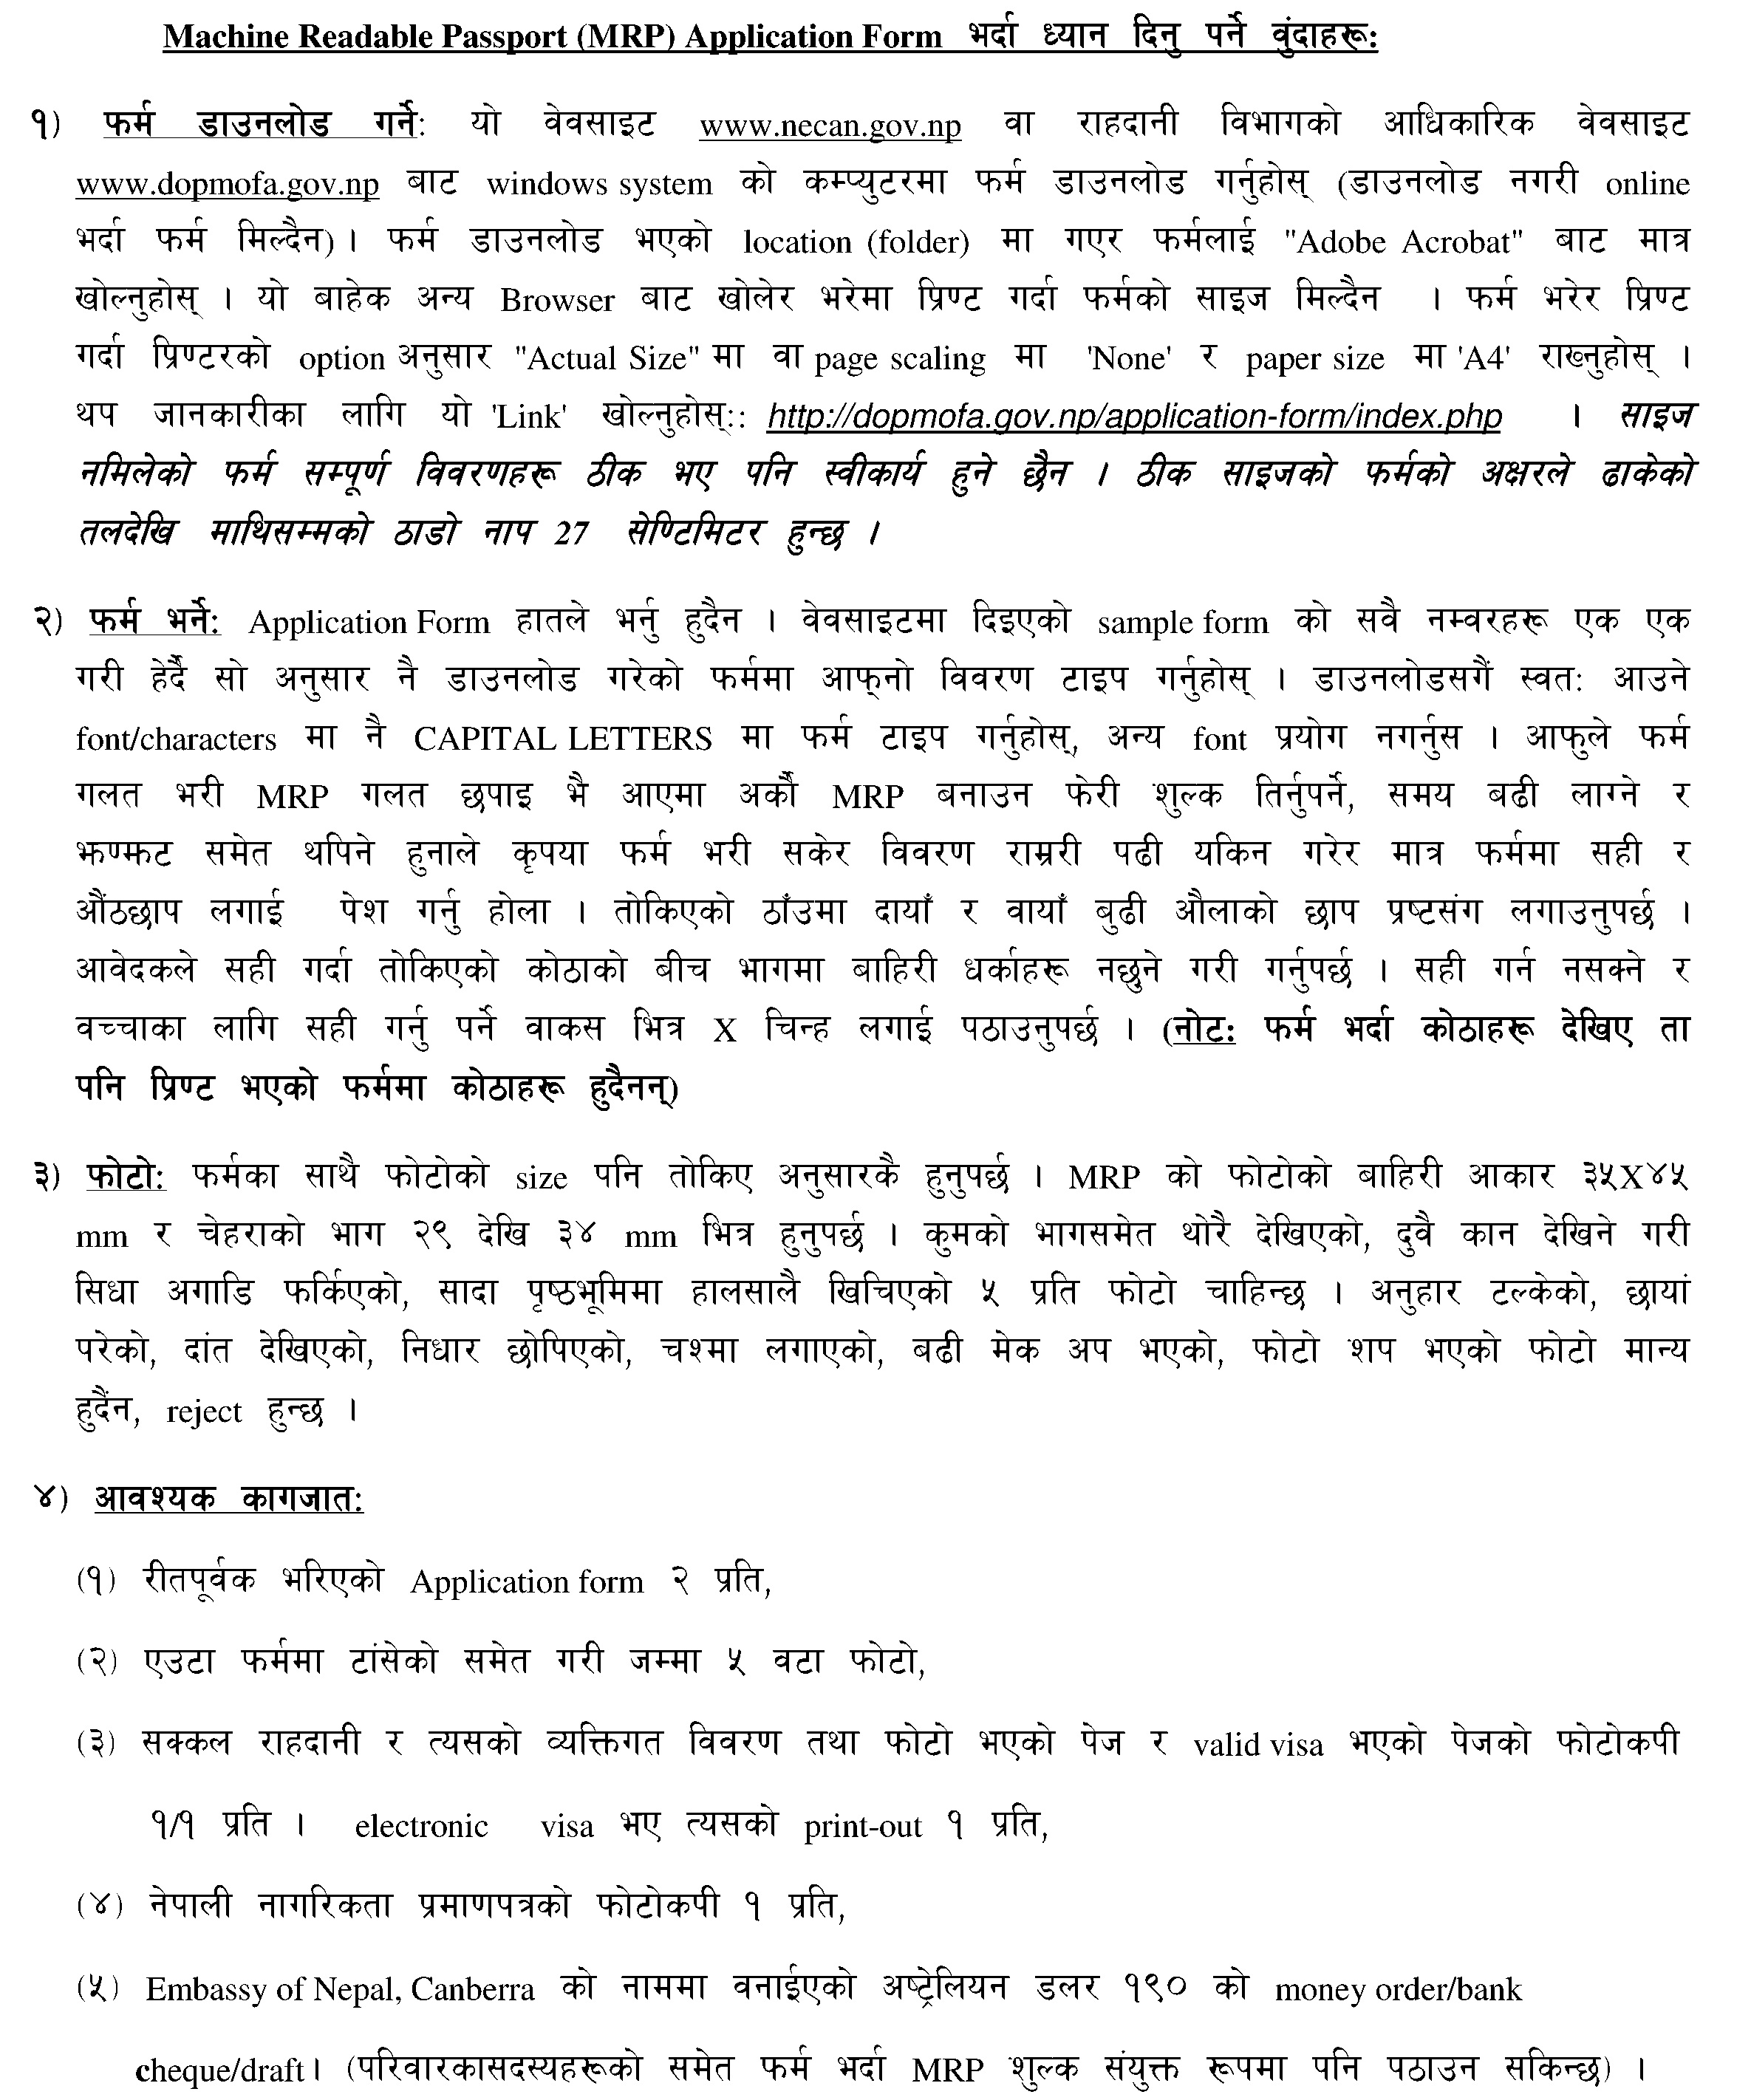 Application For Renewal Of Lost Passport